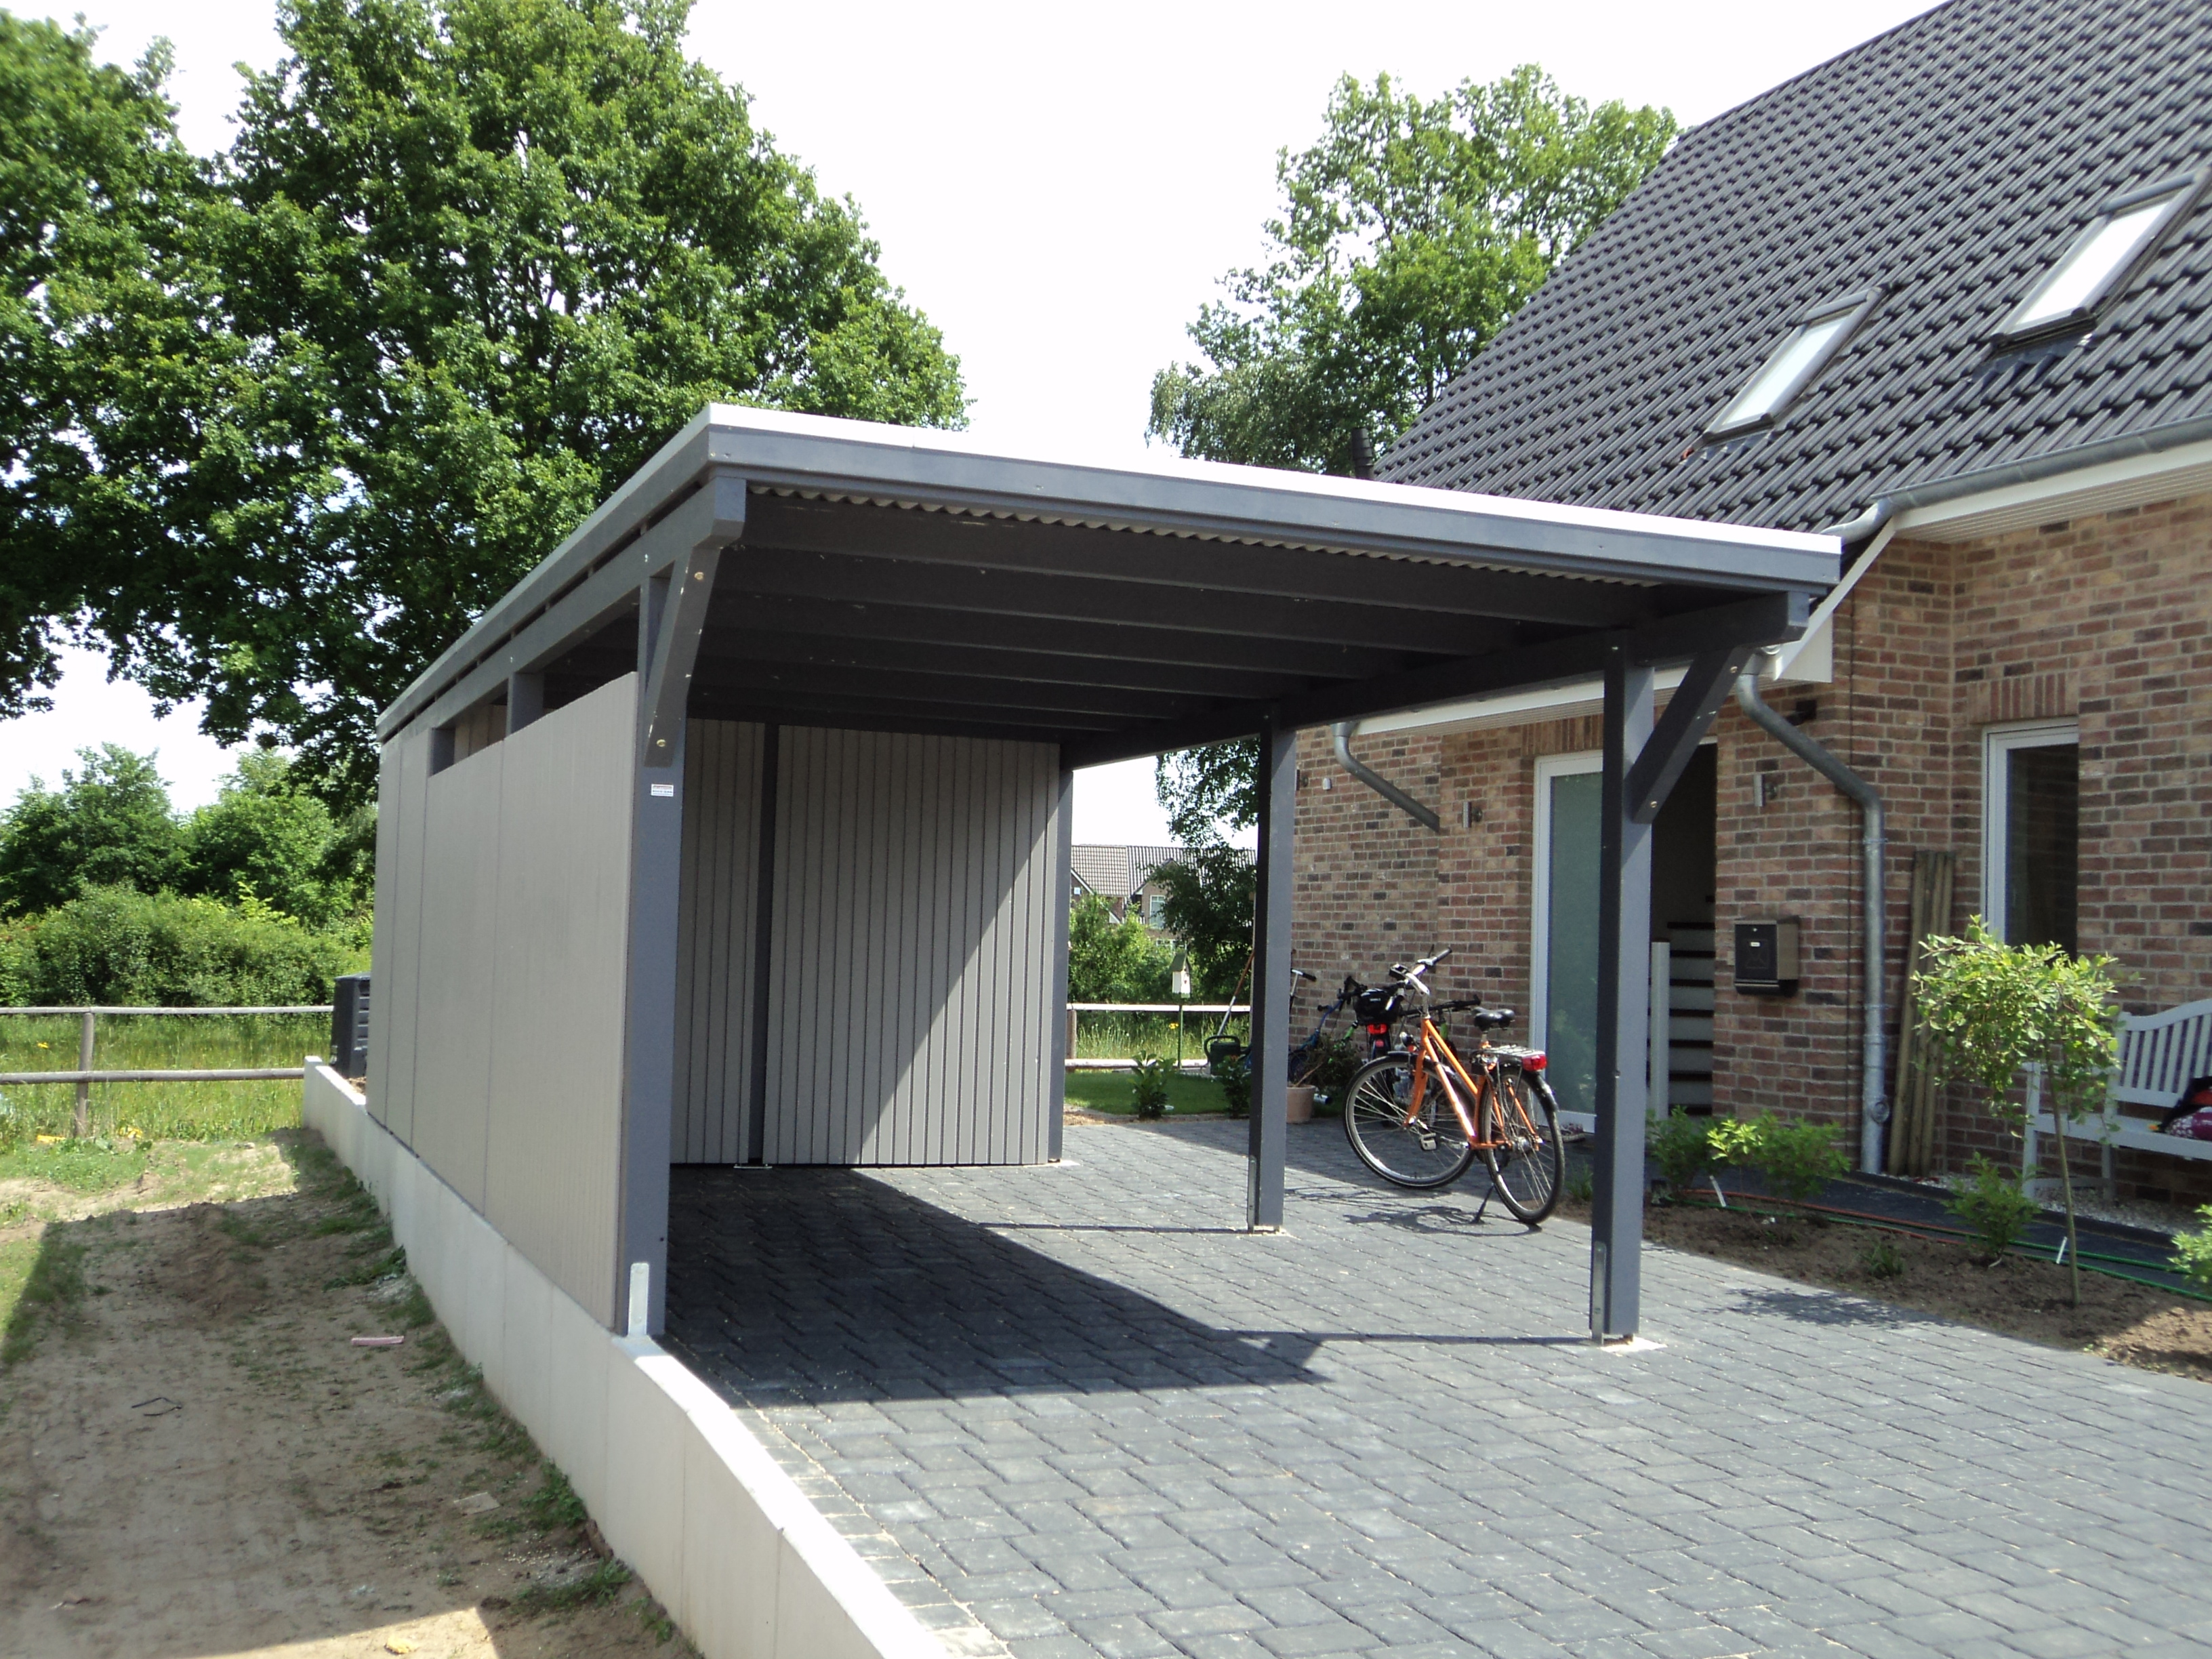 carport mit schuppen carport mit schuppen holzbau frank pl tzer flachdach carport mit schuppen. Black Bedroom Furniture Sets. Home Design Ideas